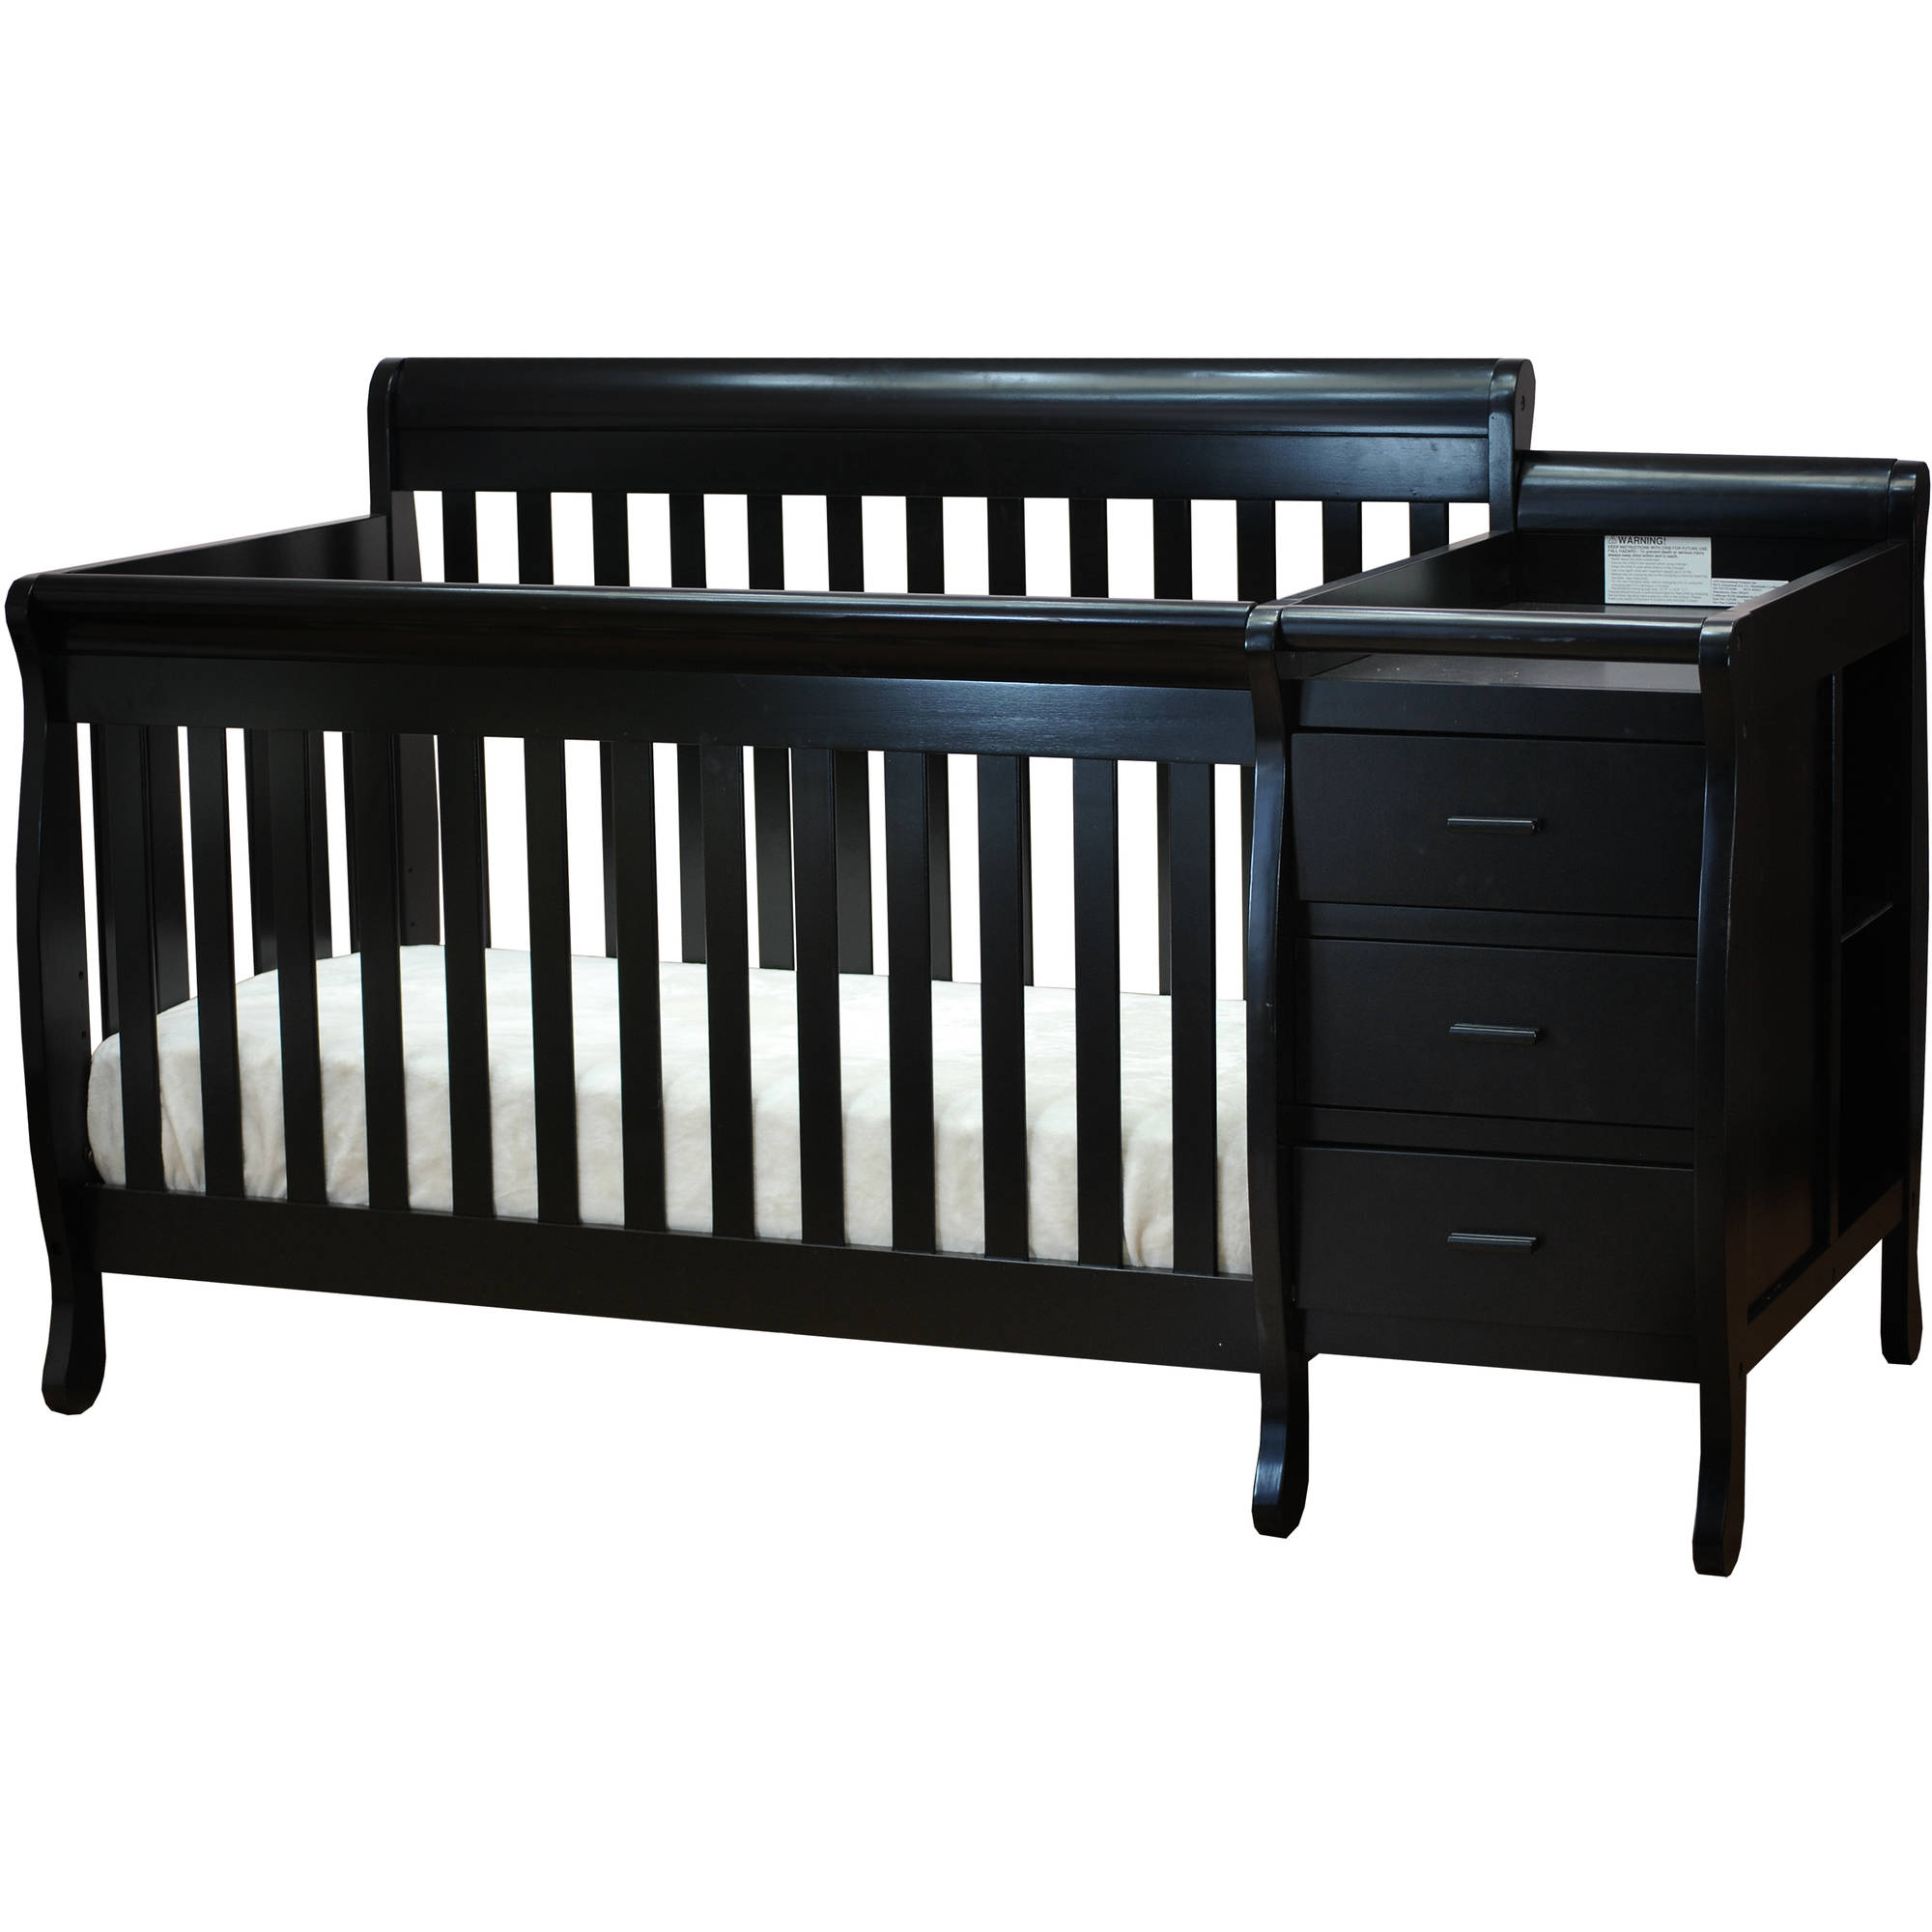 Athena Kimberly 3-in-1 Convertible Crib and Changer Combo, Choose Your Finish